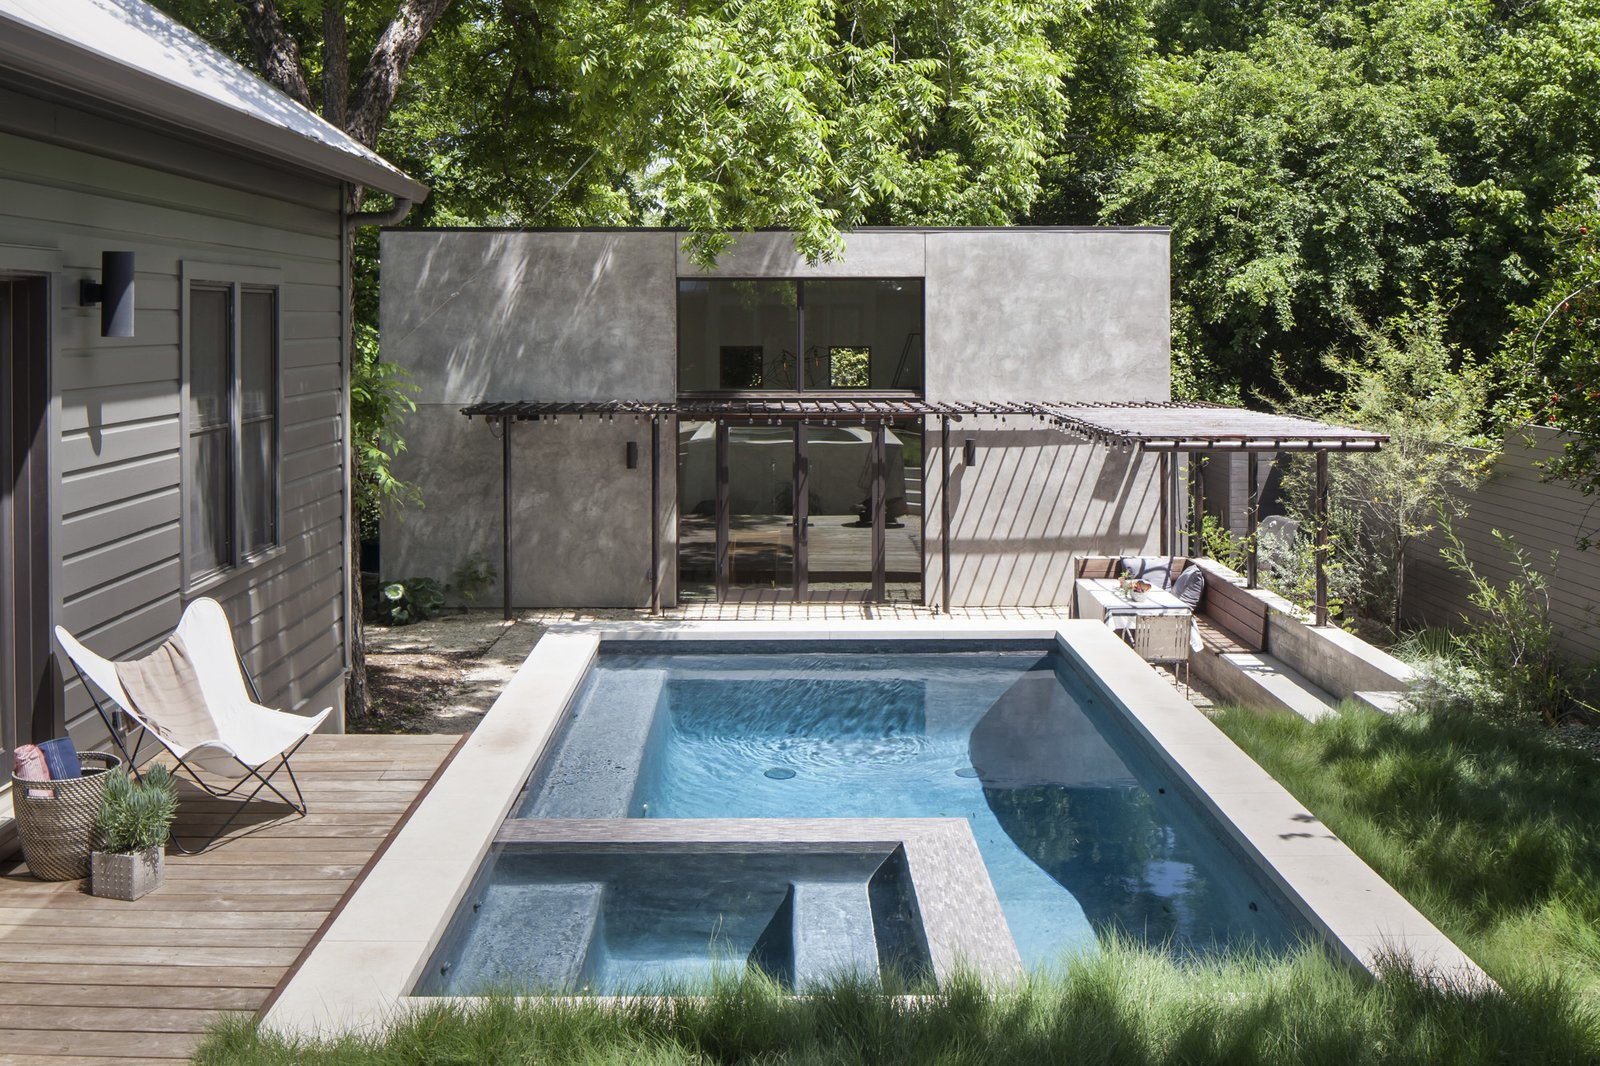 Outdoor, Wood Patio, Porch, Deck, Walkways, Concrete Pools, Tubs, Shower, and Grass Looking from new back porch towards the new pool, casita building, and new outdoor living space.  Photo 9 of 21 in Dwell Community's Top 20 Homes of 2017 from Garner Pool & Casita